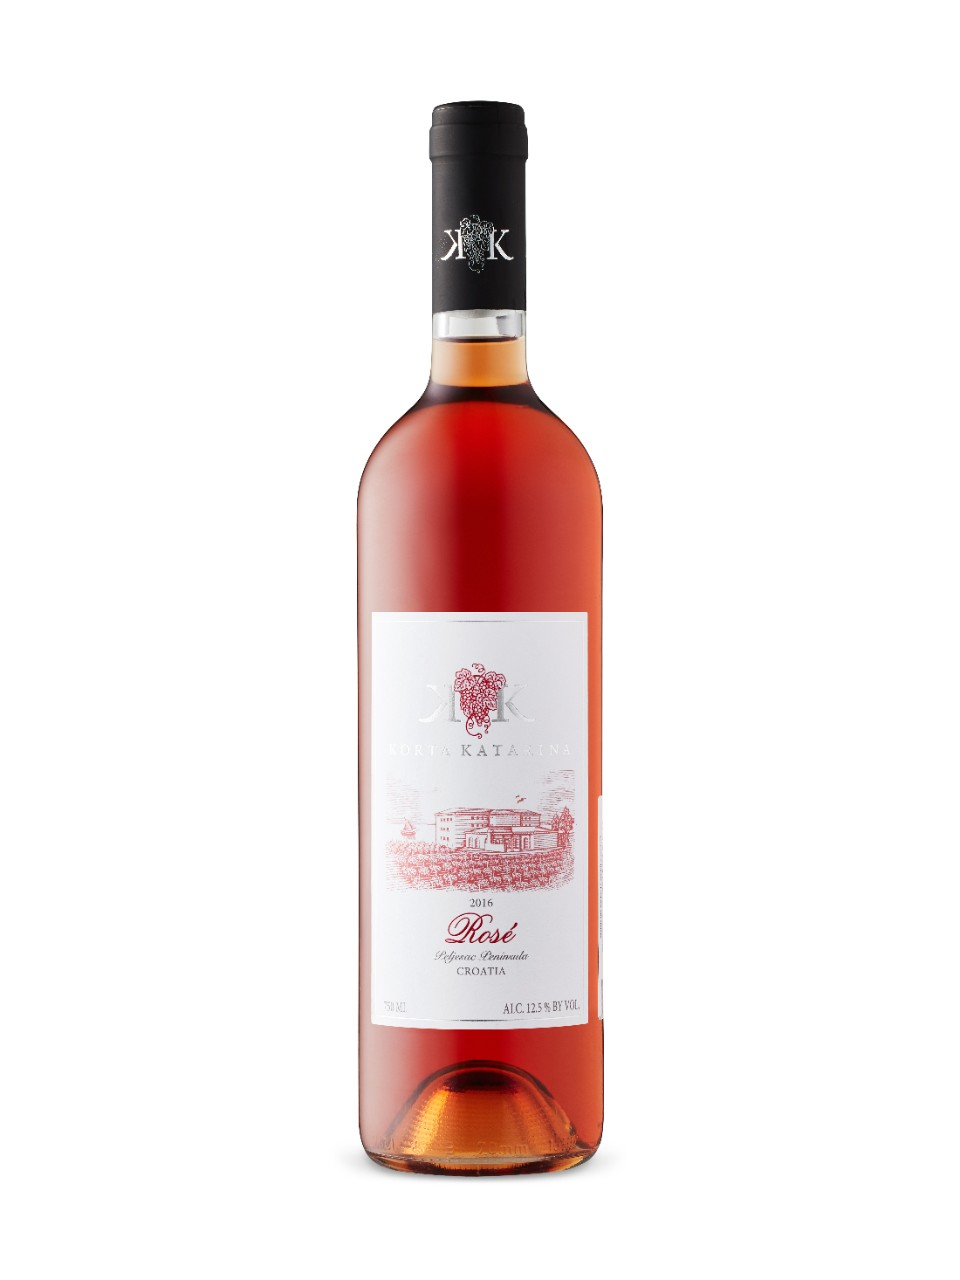 Korta Katarina Rose 2016 from LCBO